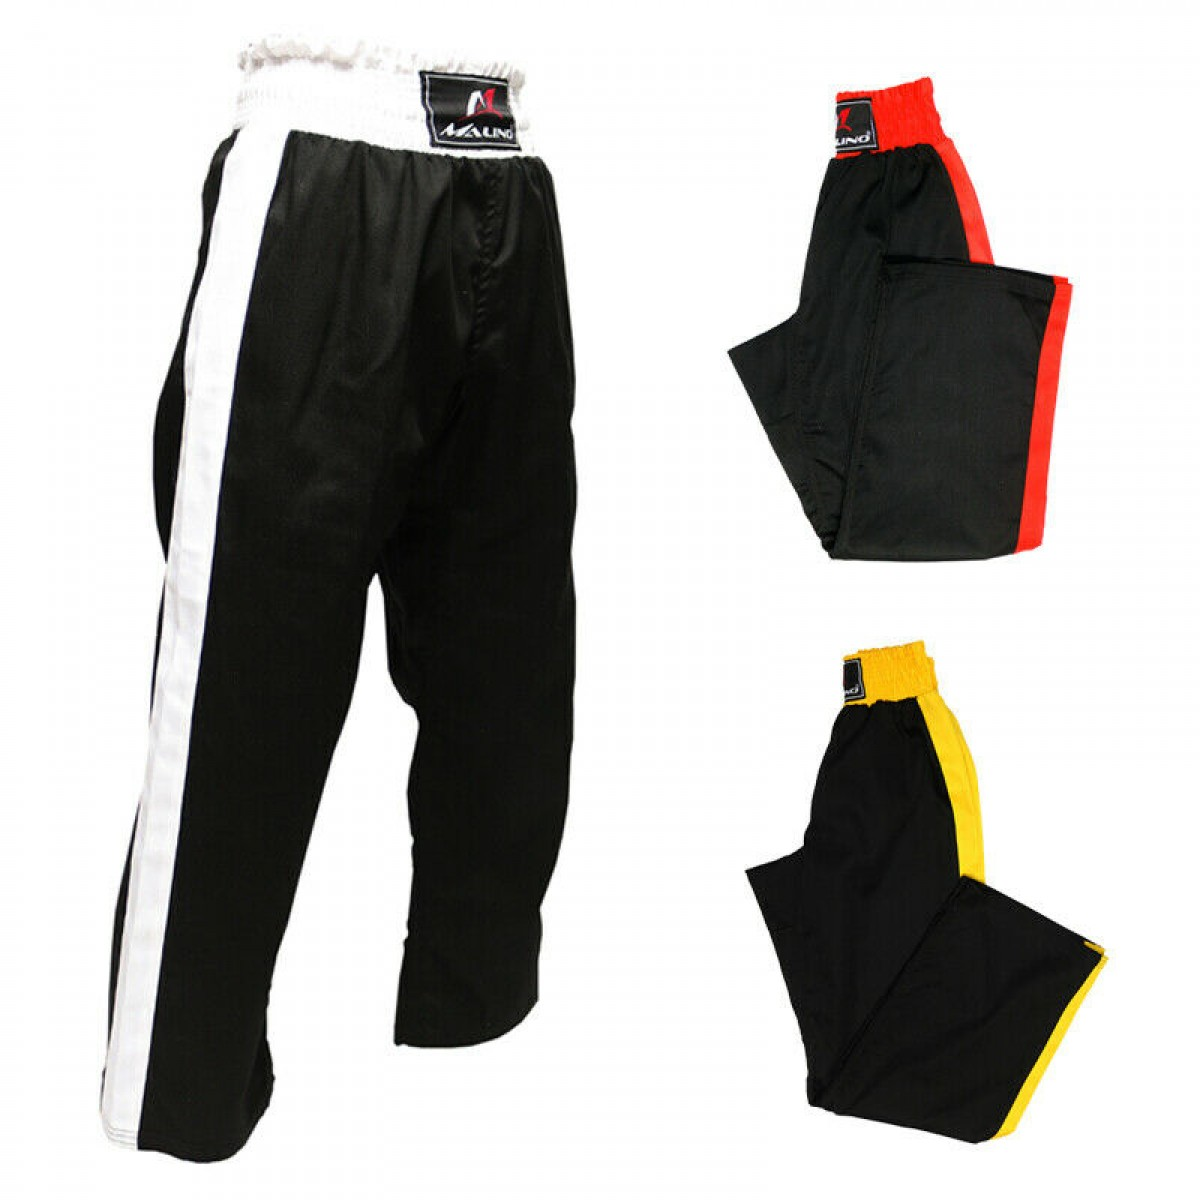 Malino Shine Kickboxing Trouser Mix Martial Arts Training Silk Satin Trouser Black Red